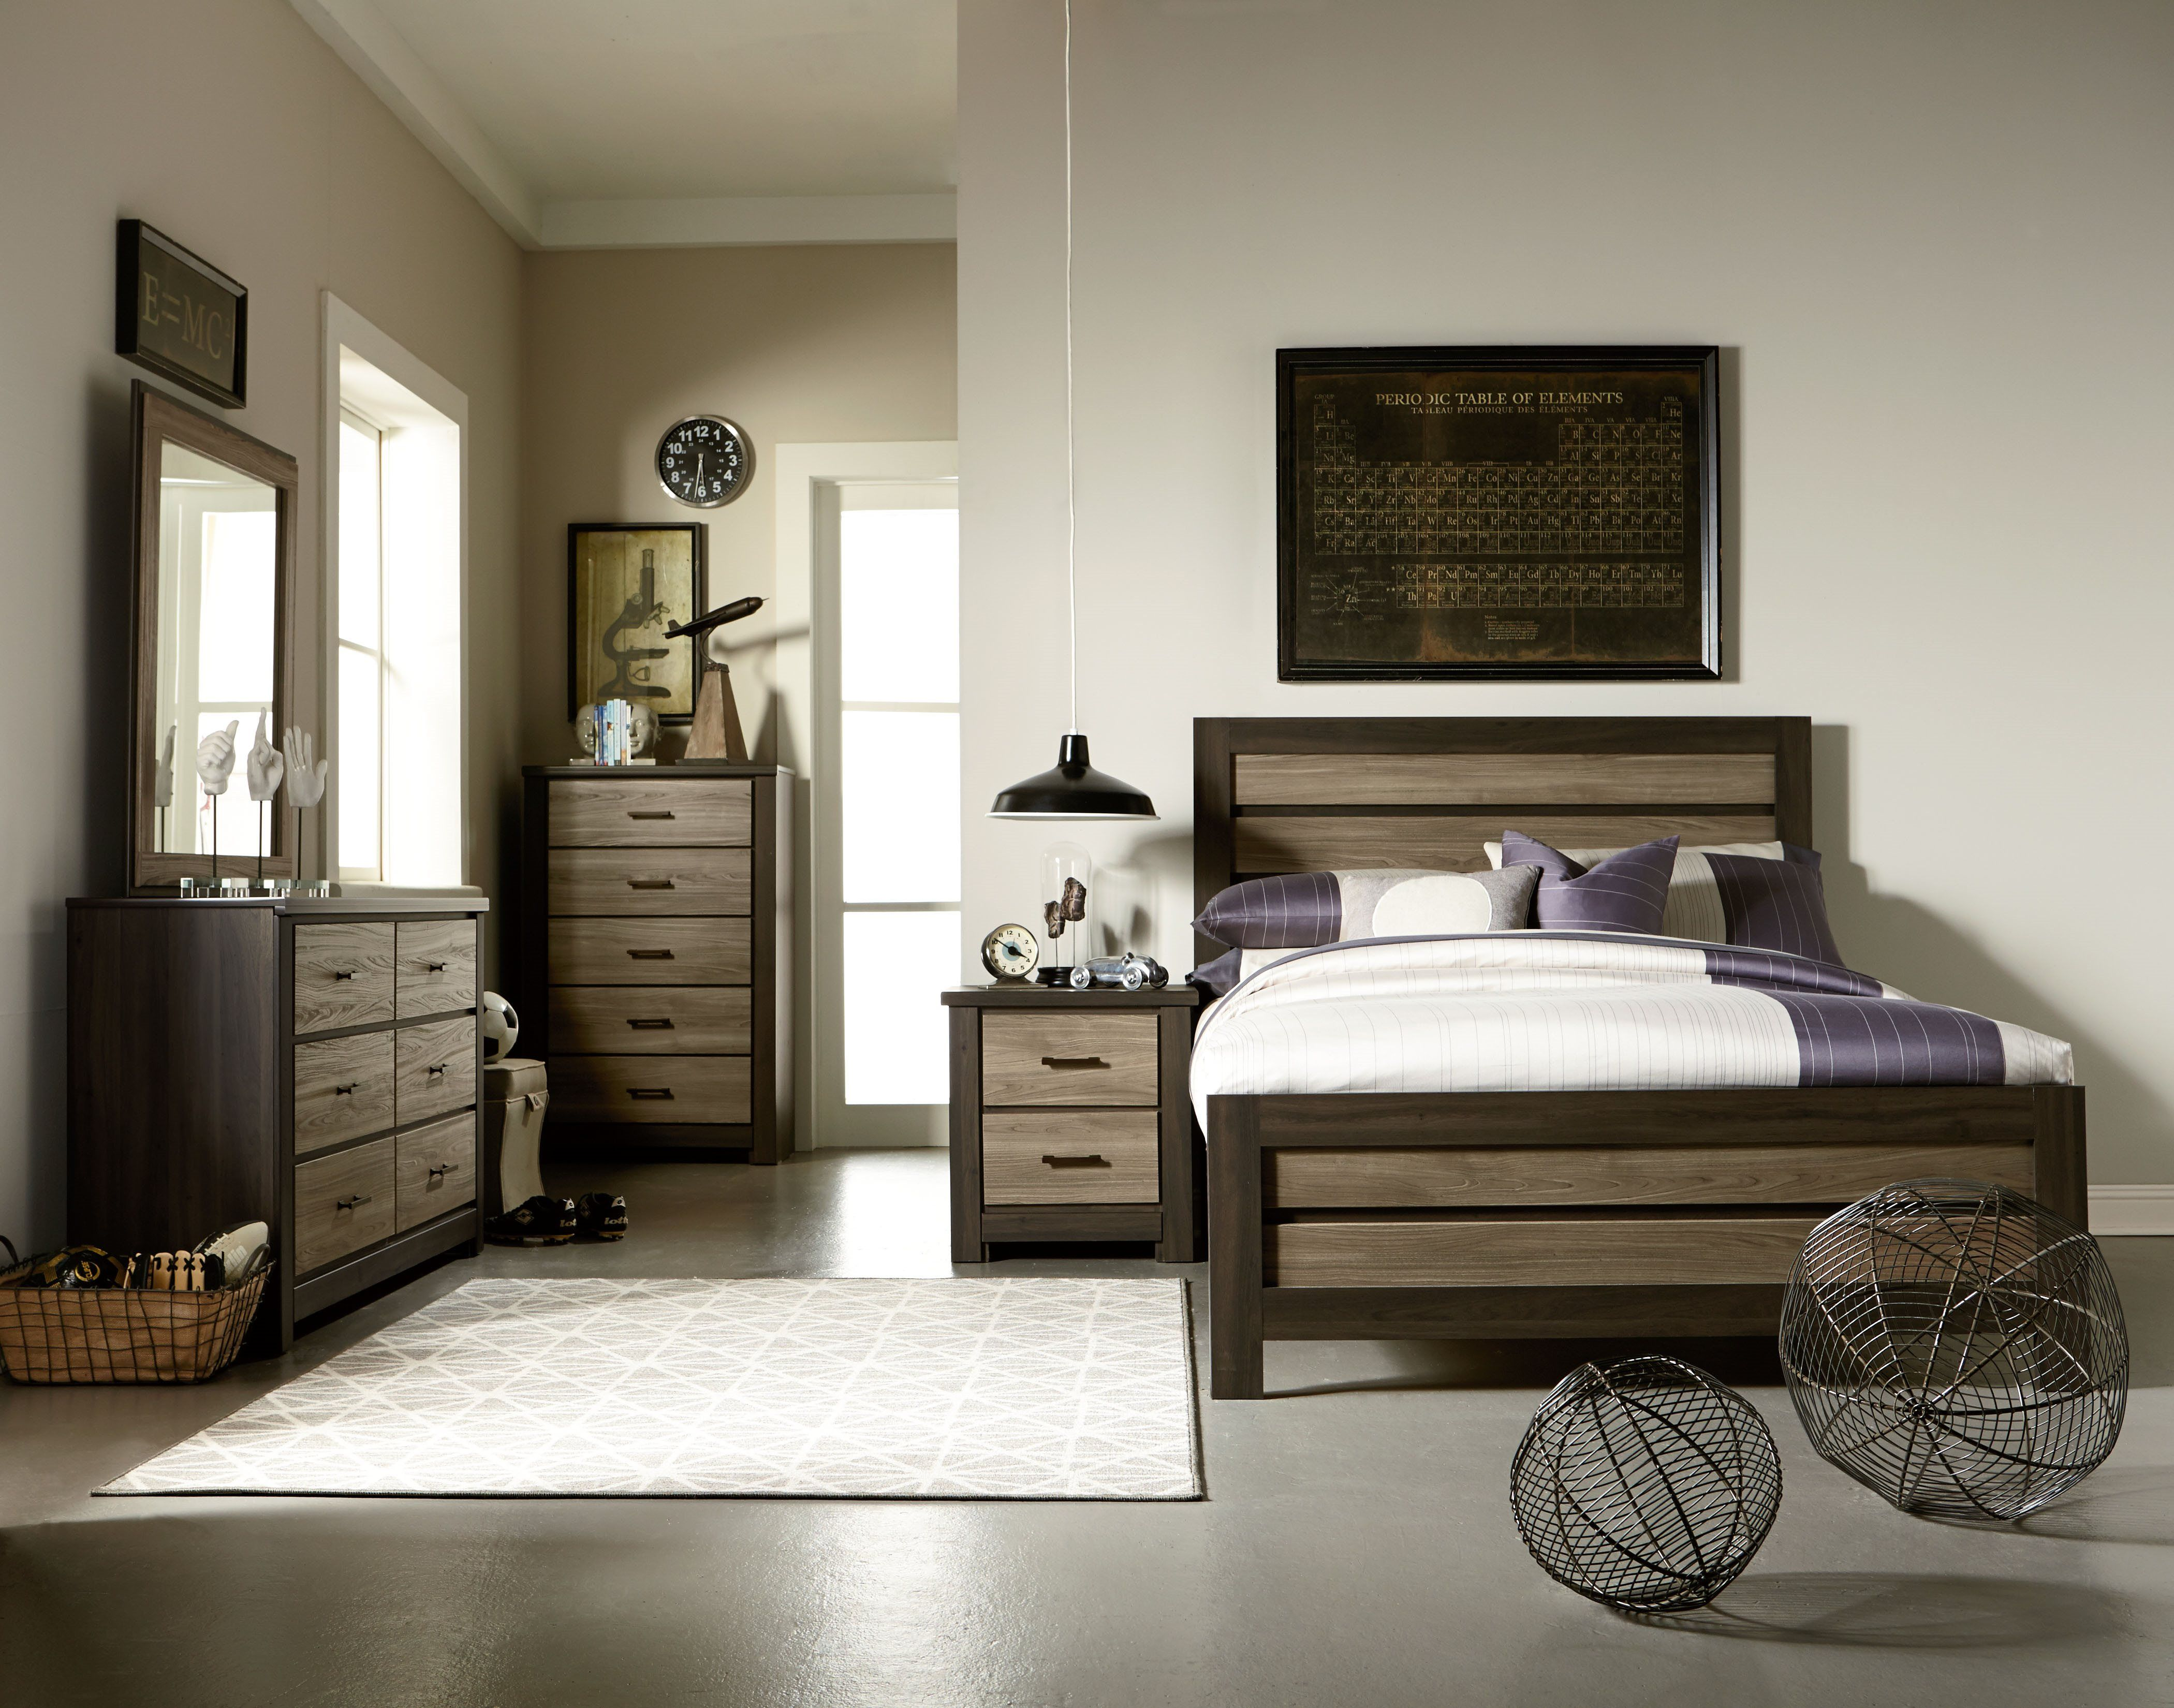 Darvin Furniture Orland Park Chicago Il Cheap Bedroom Furniture Standard Furniture Bedroom Furniture Sets